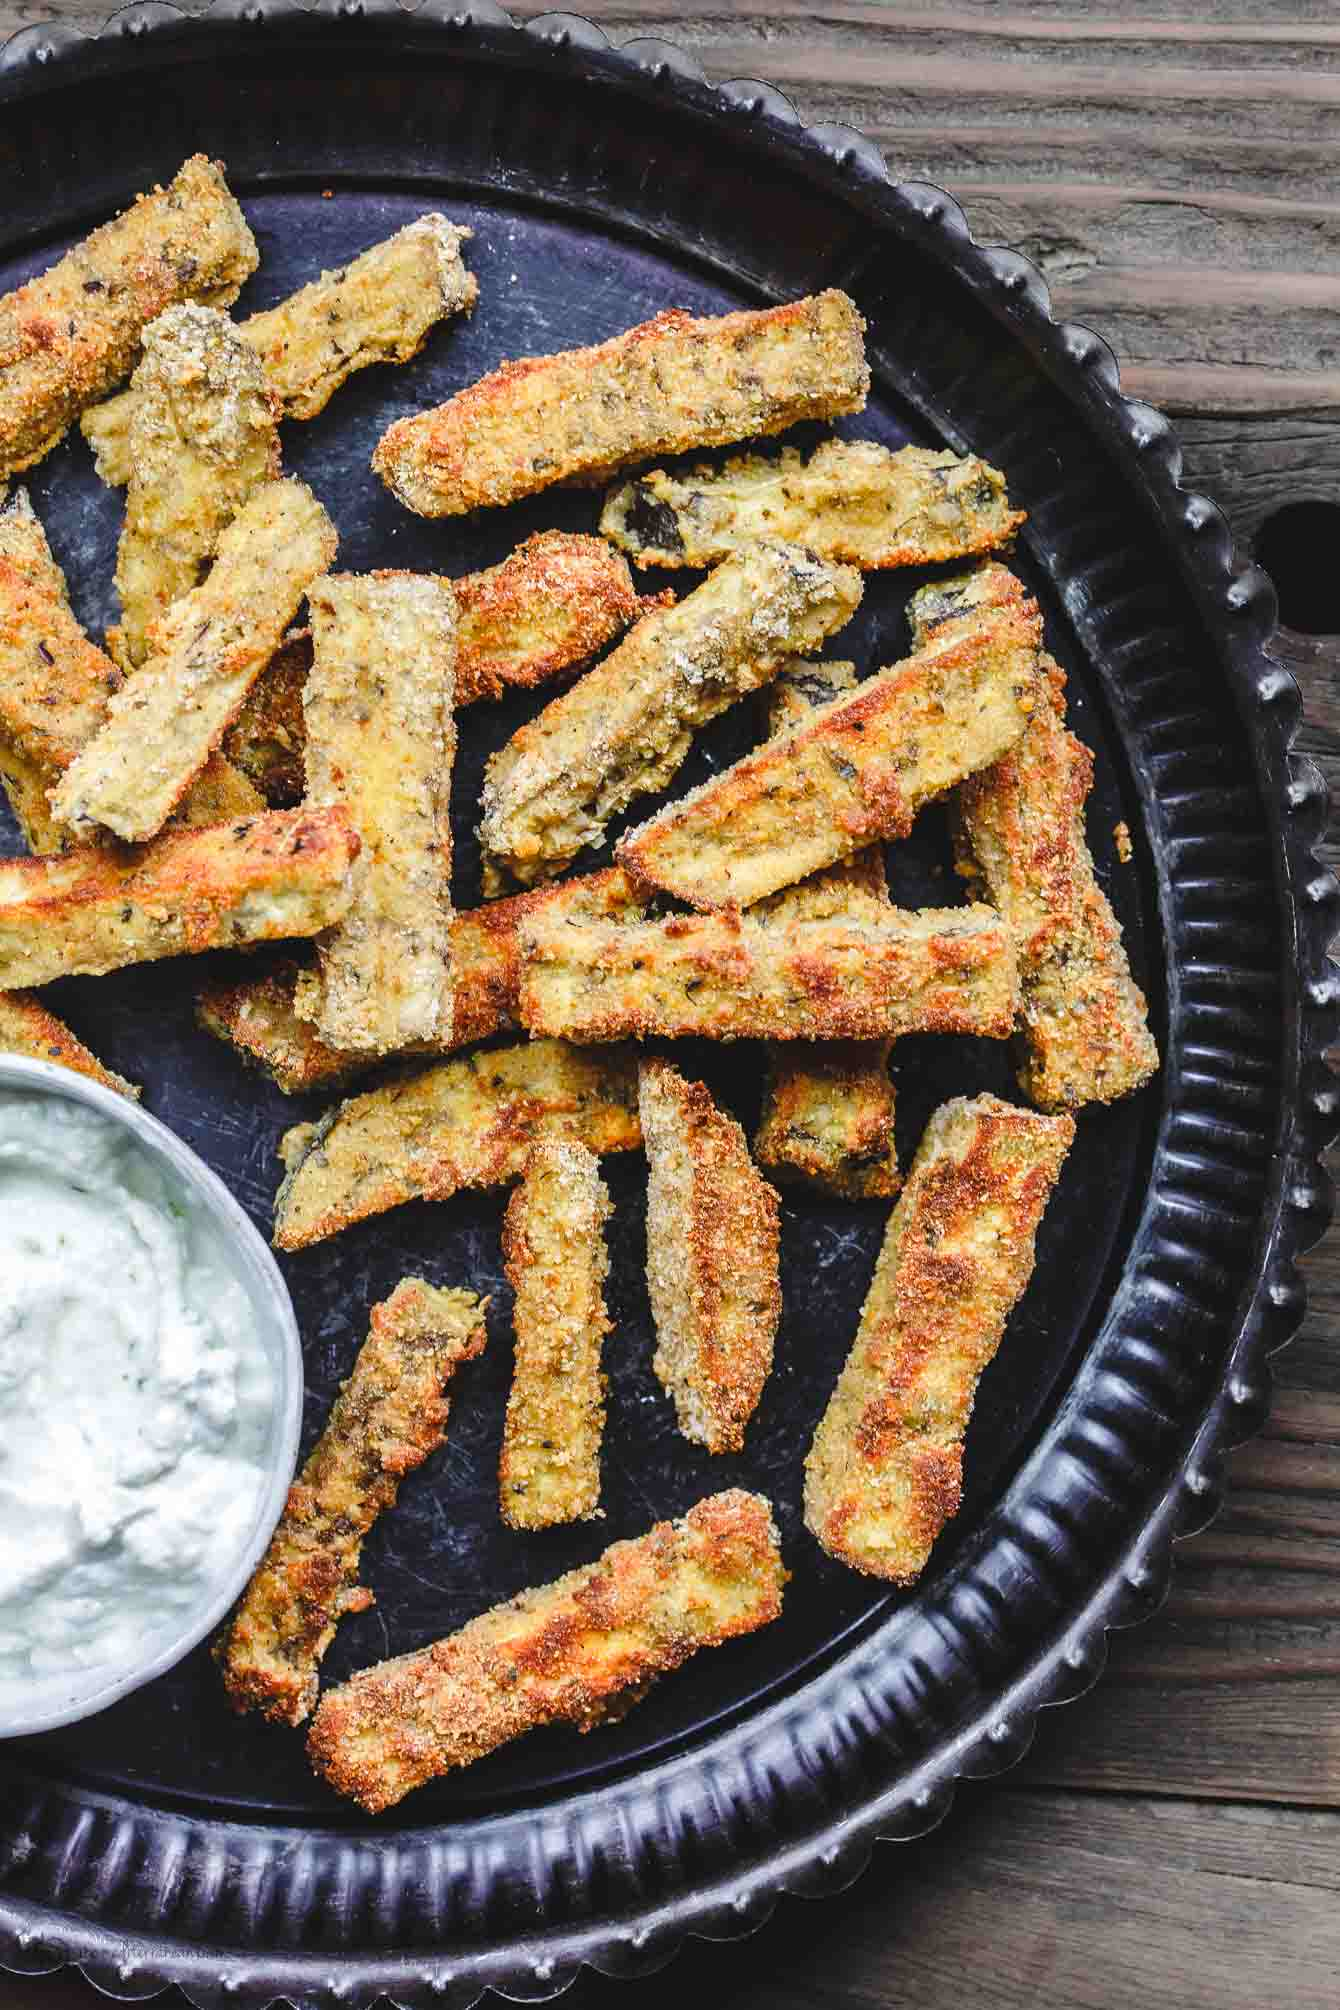 Baked eggplant fries with greek tzatziki sauce the mediterranean dish baked eggplant fries with greek tzatziki sauce the mediterranean dish quick simple and forumfinder Image collections